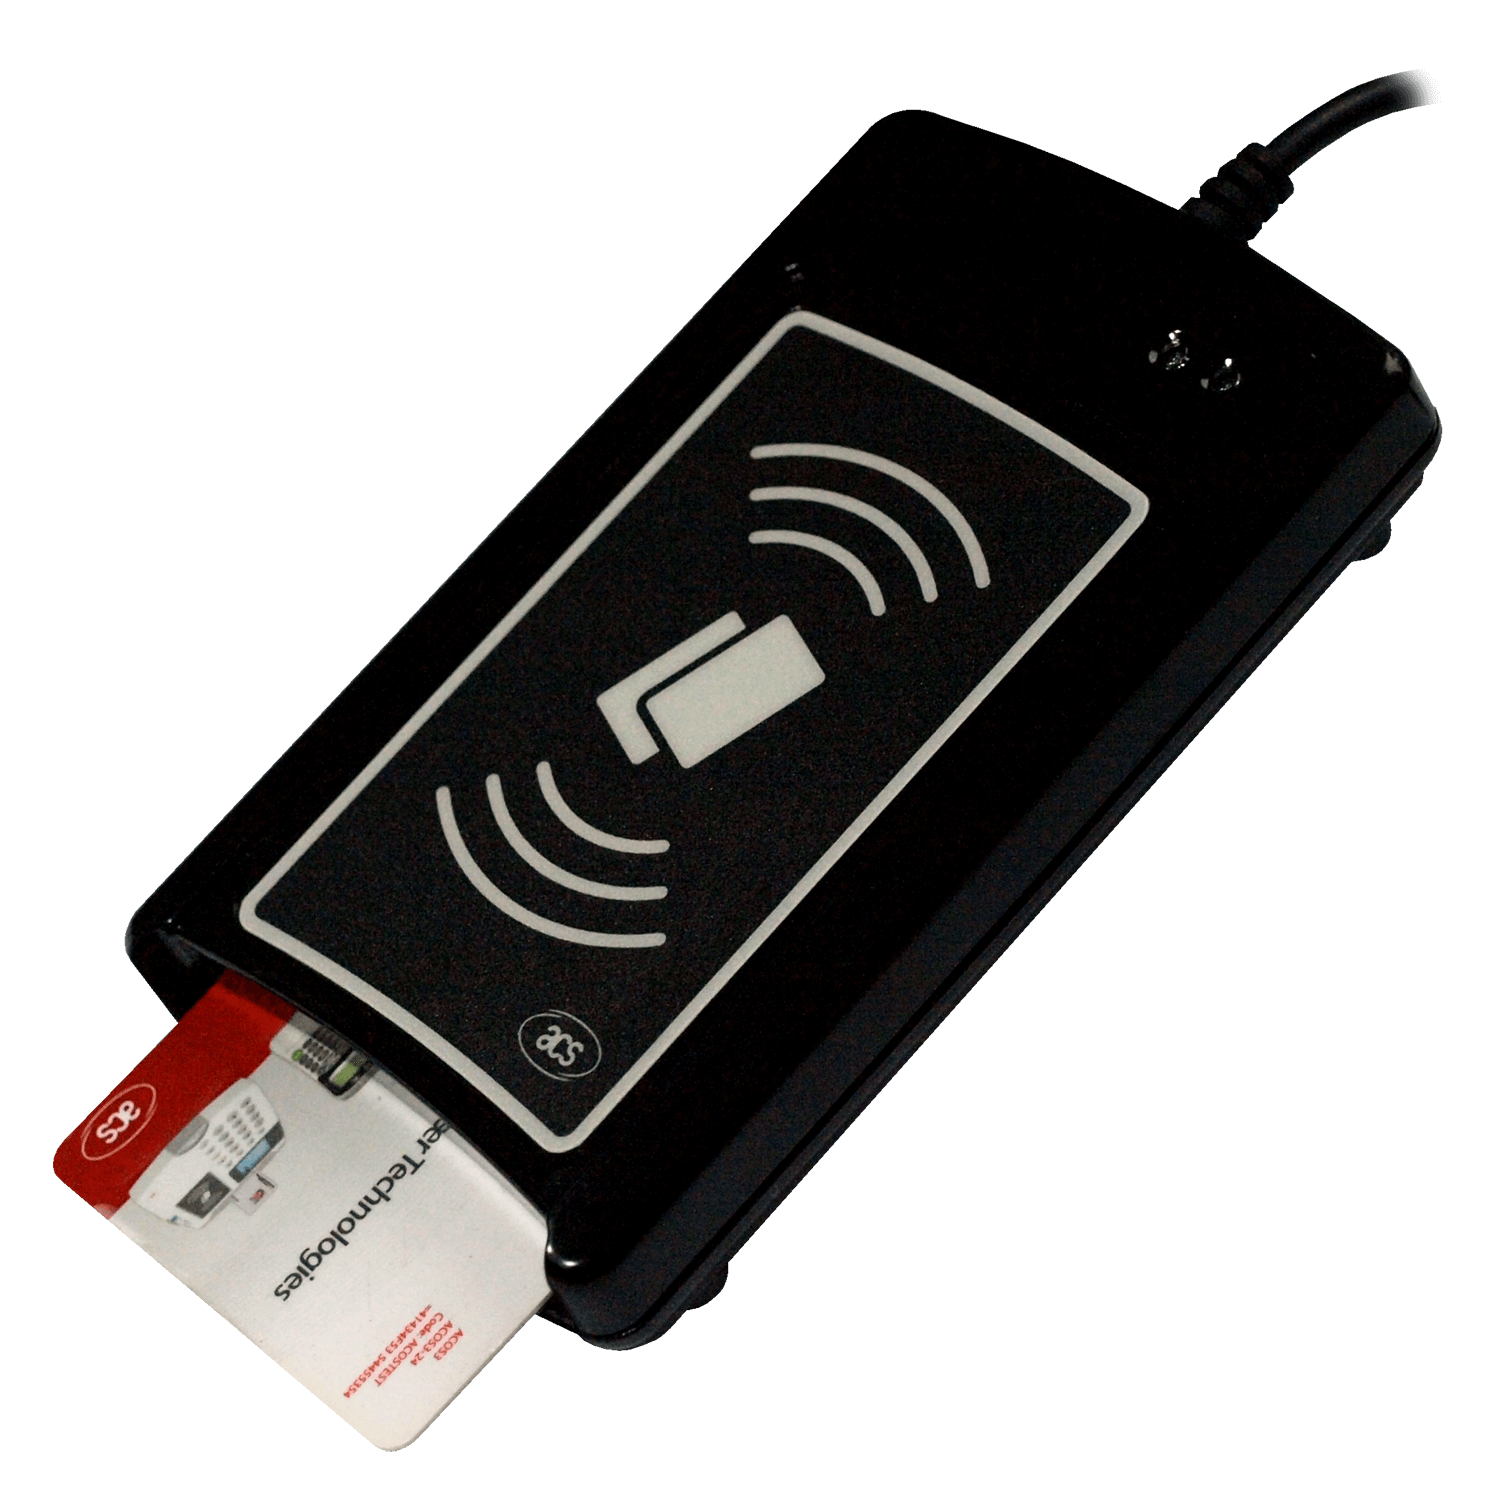 readers used for smart cards